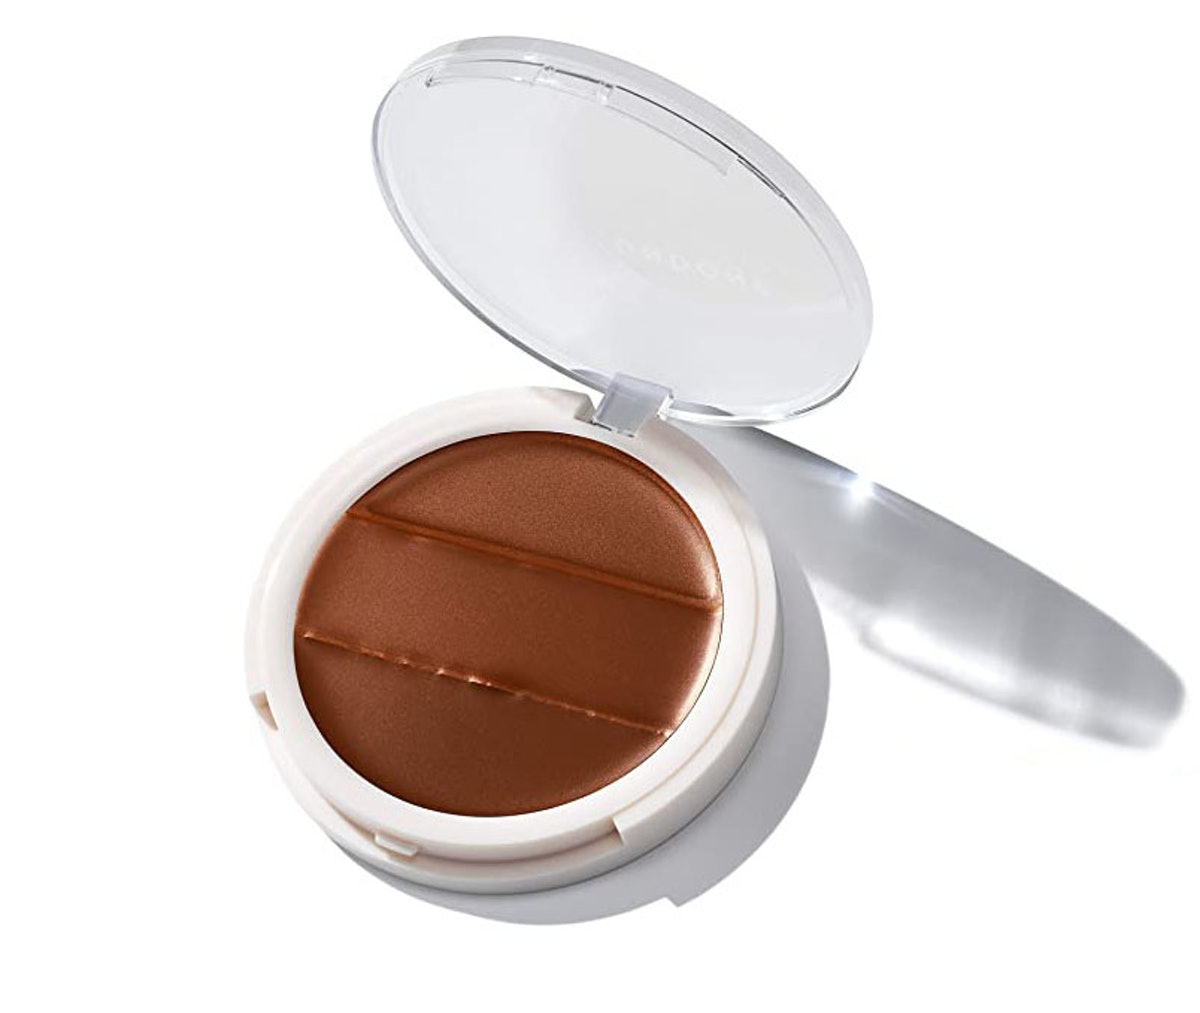 Undone Beauty Conceal To Reveal 3-in-1 Coverage Palette